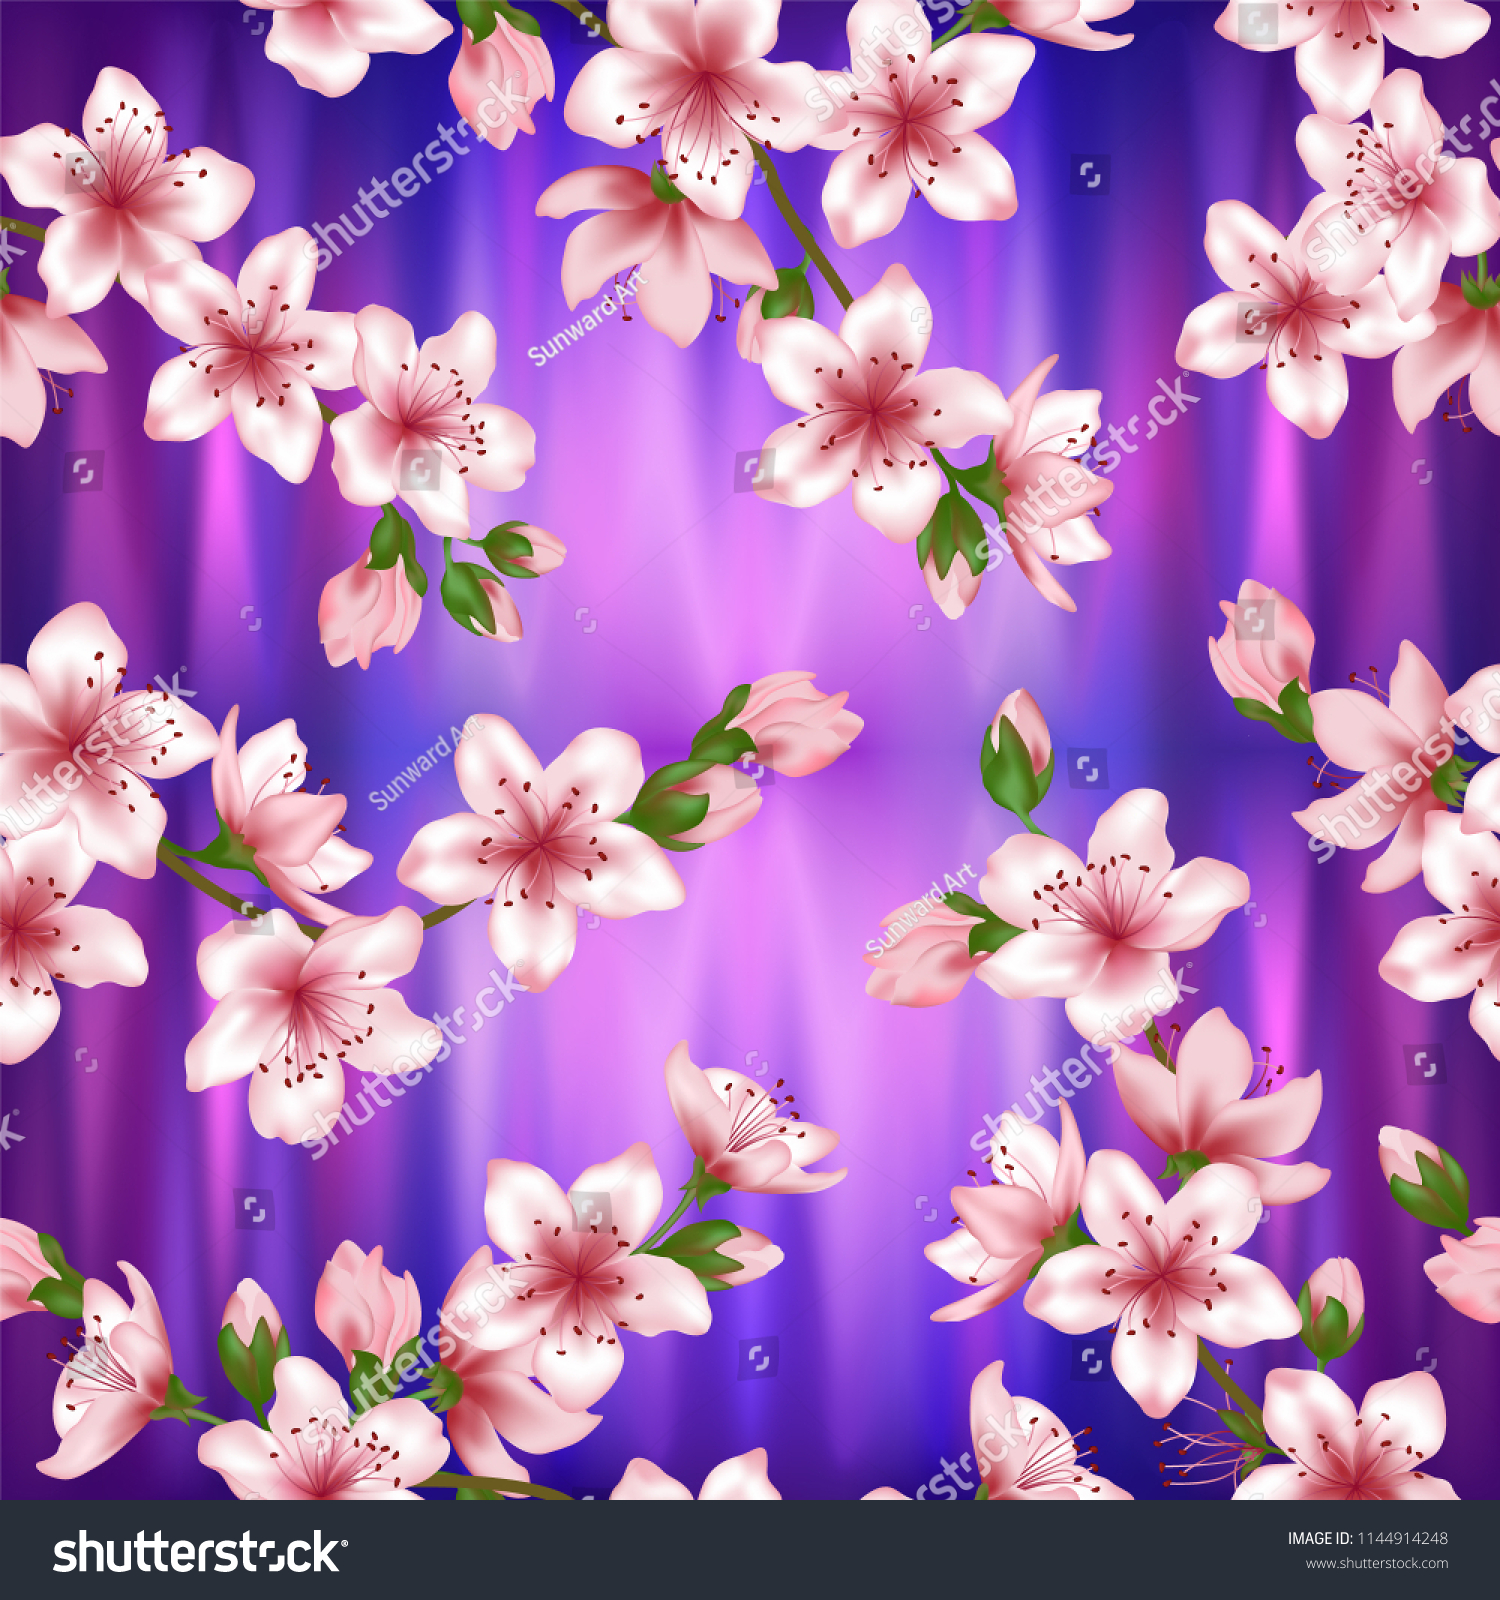 Japanese Cherry Blossom Sakura Branches Vector Stock Vector Royalty Free 1144914248